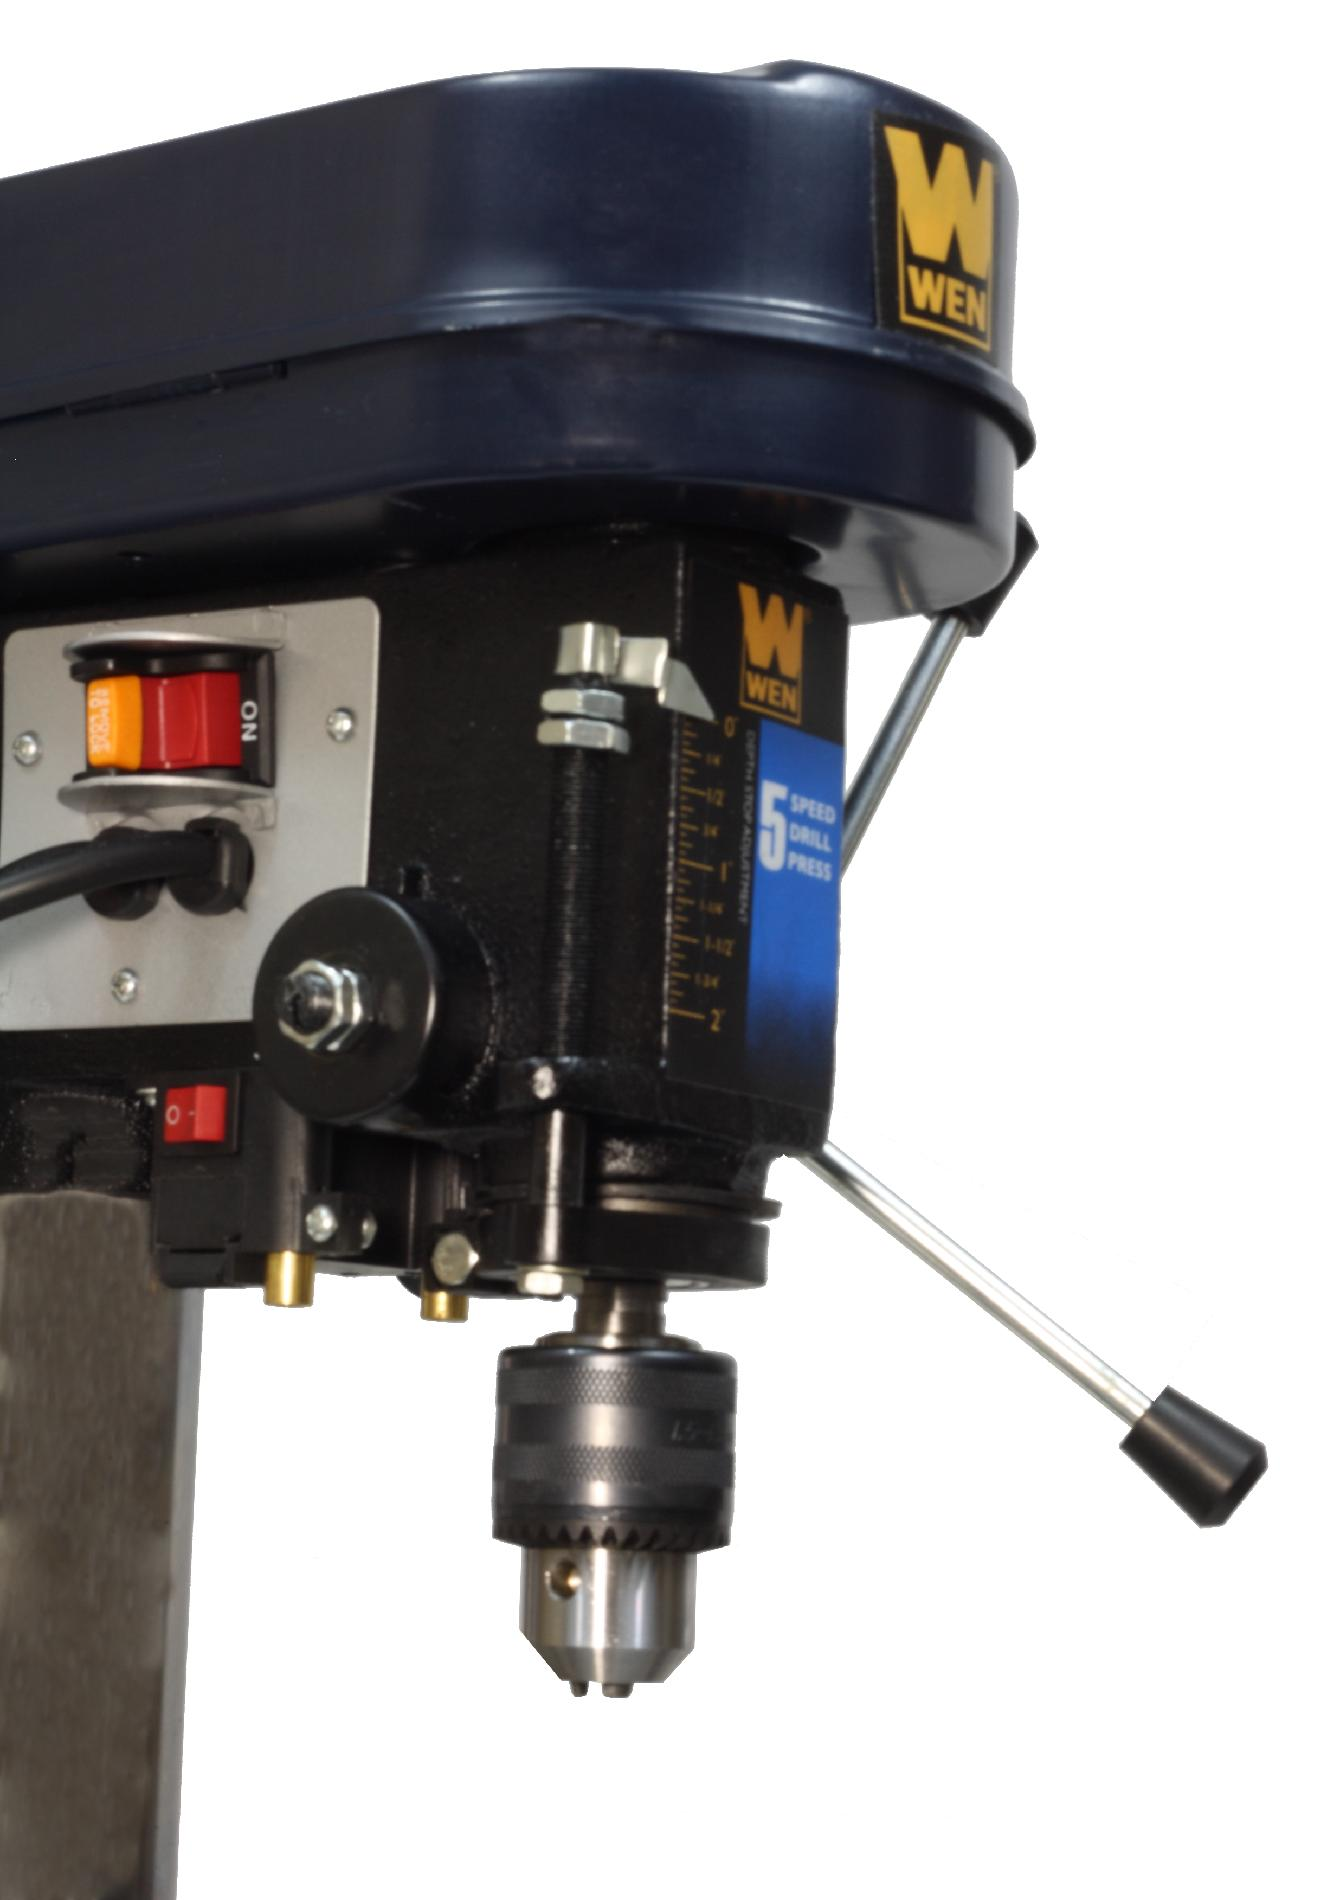 "Wen 8"" Drill Press with Laser"